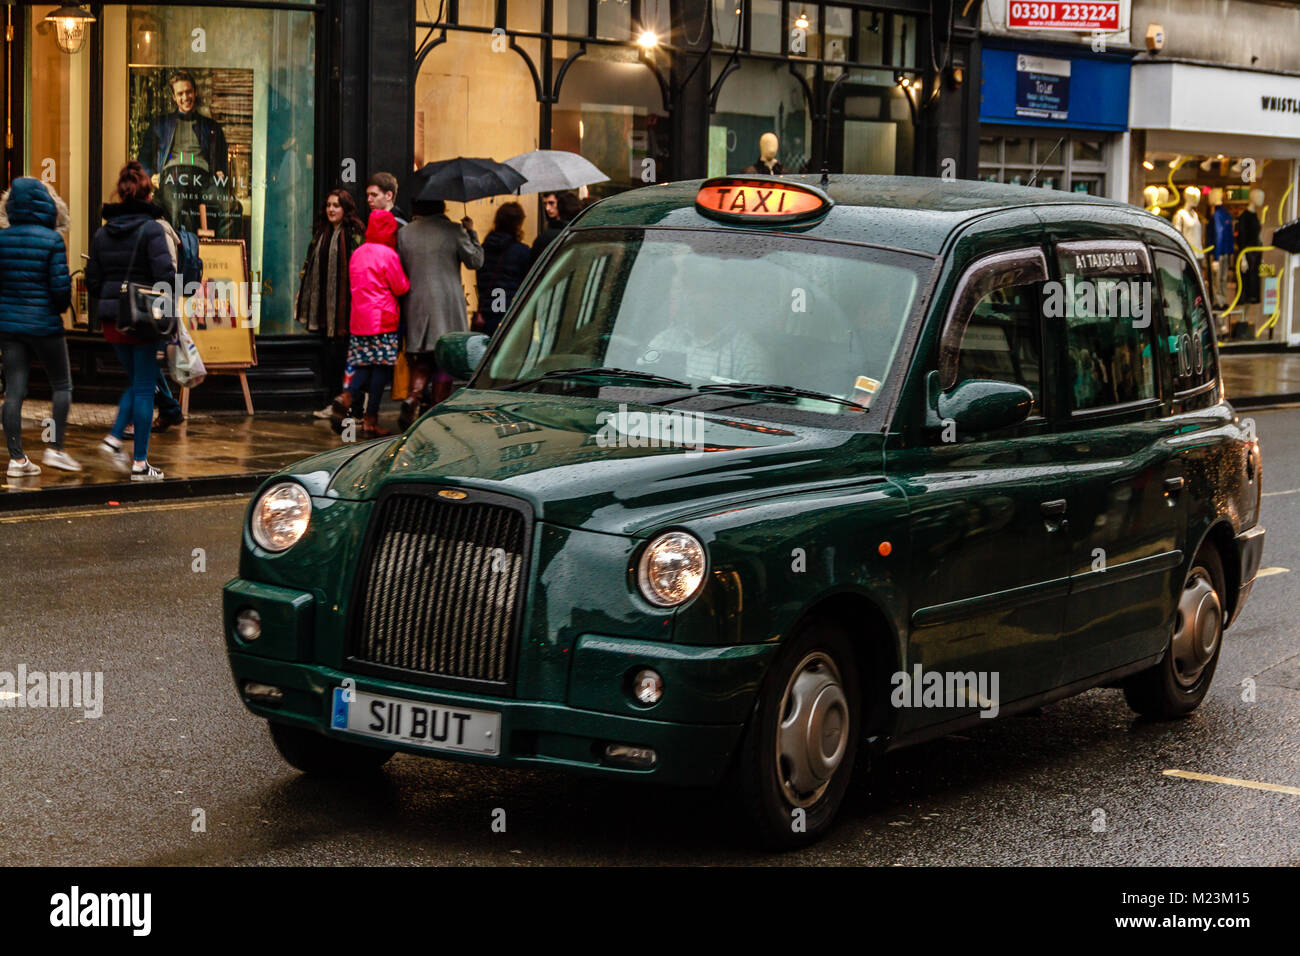 Green Hackney Carriage traveling through Oxford, Oxfordshire, UK. Feb 2017 - Stock Image